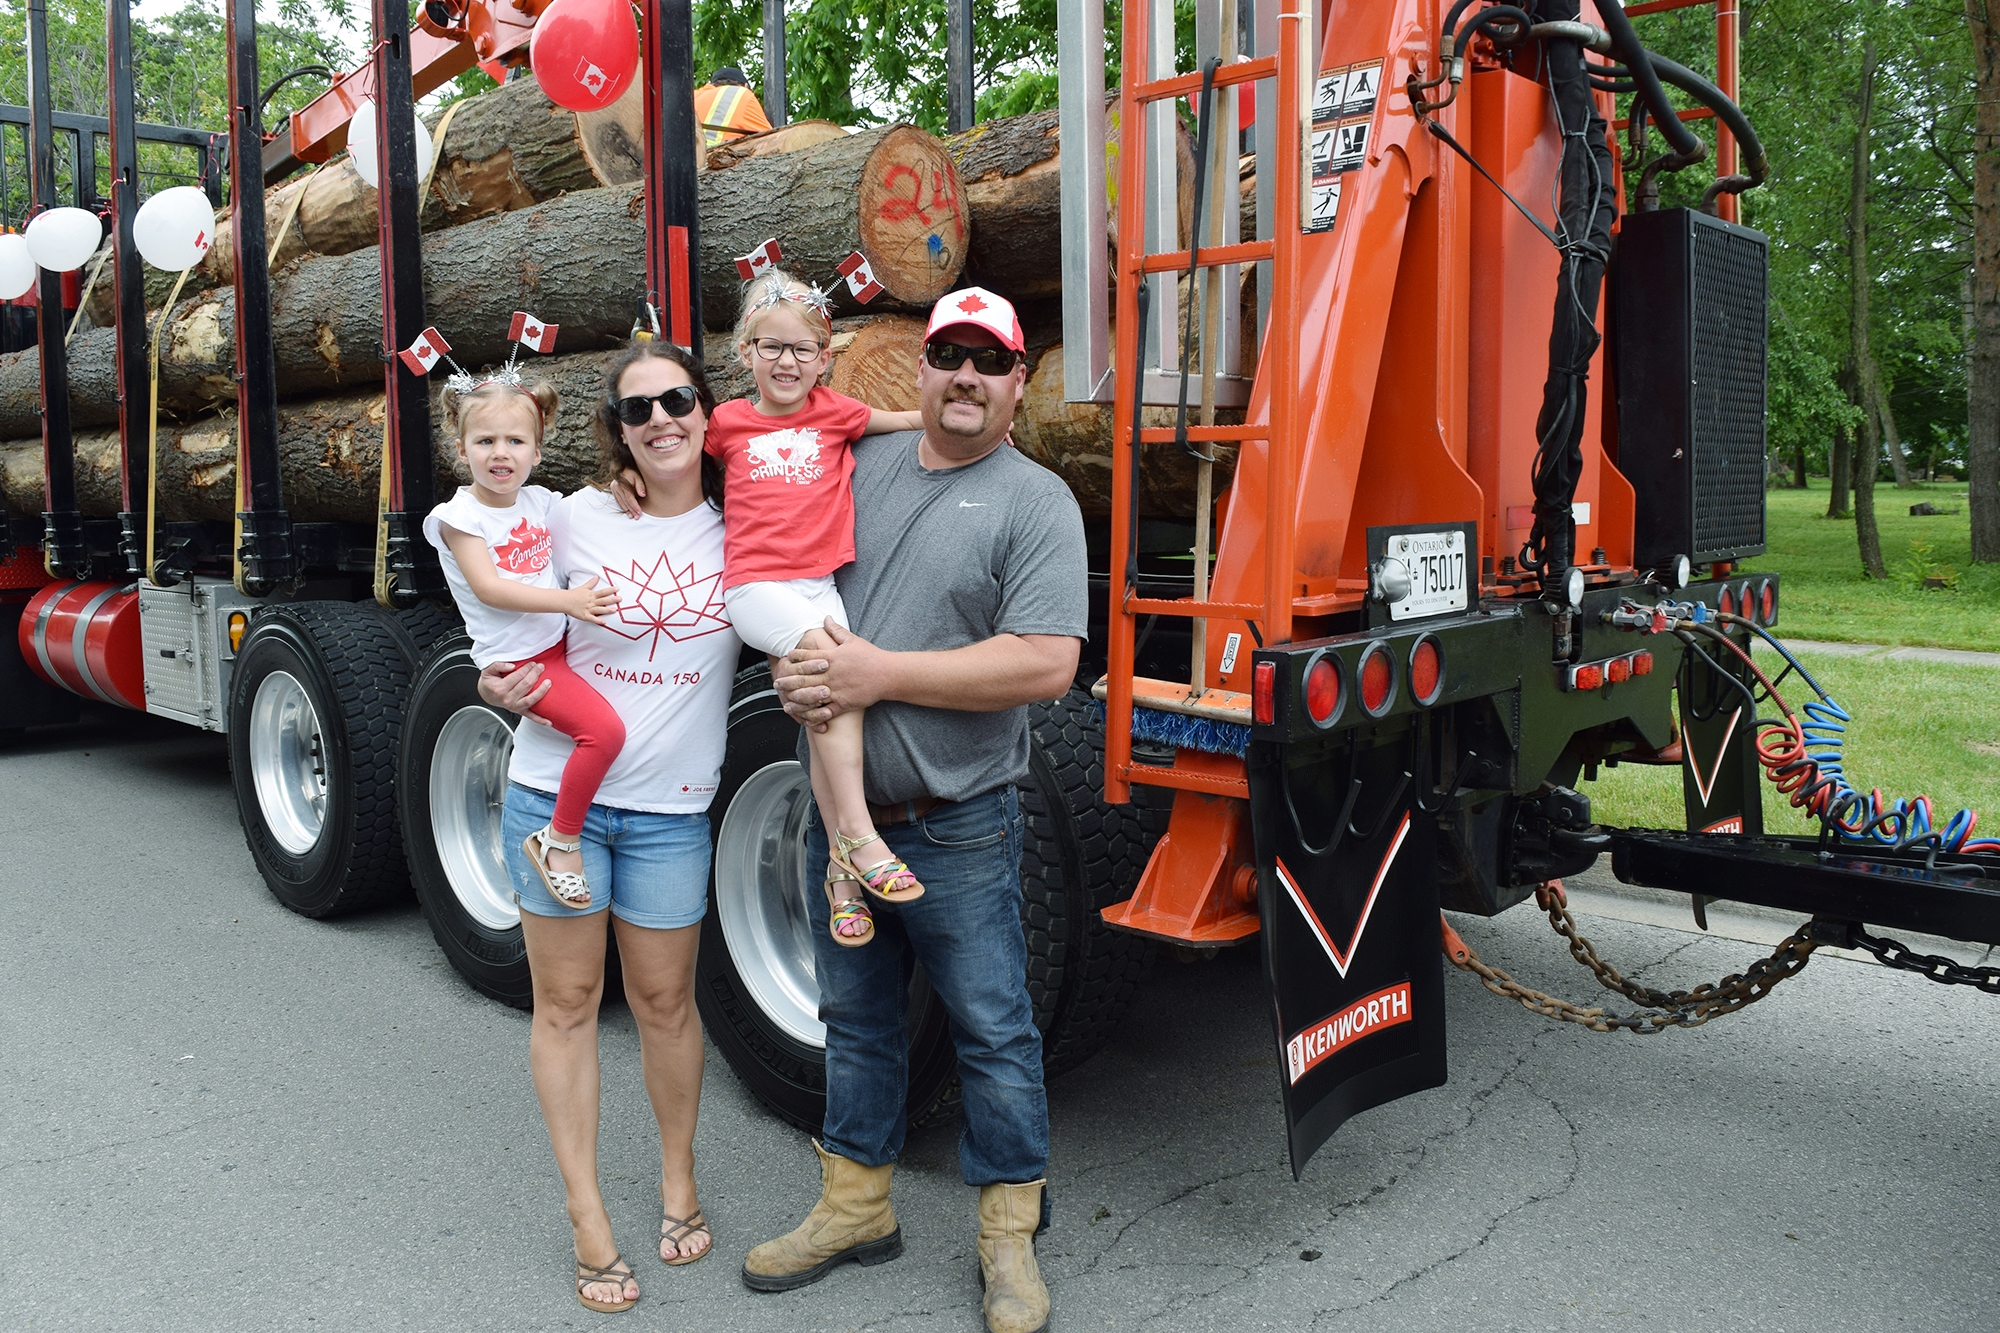 Man and women with 2 girls standing in front of Townsend lumber truck covered in red and white balloons for Canada Day.